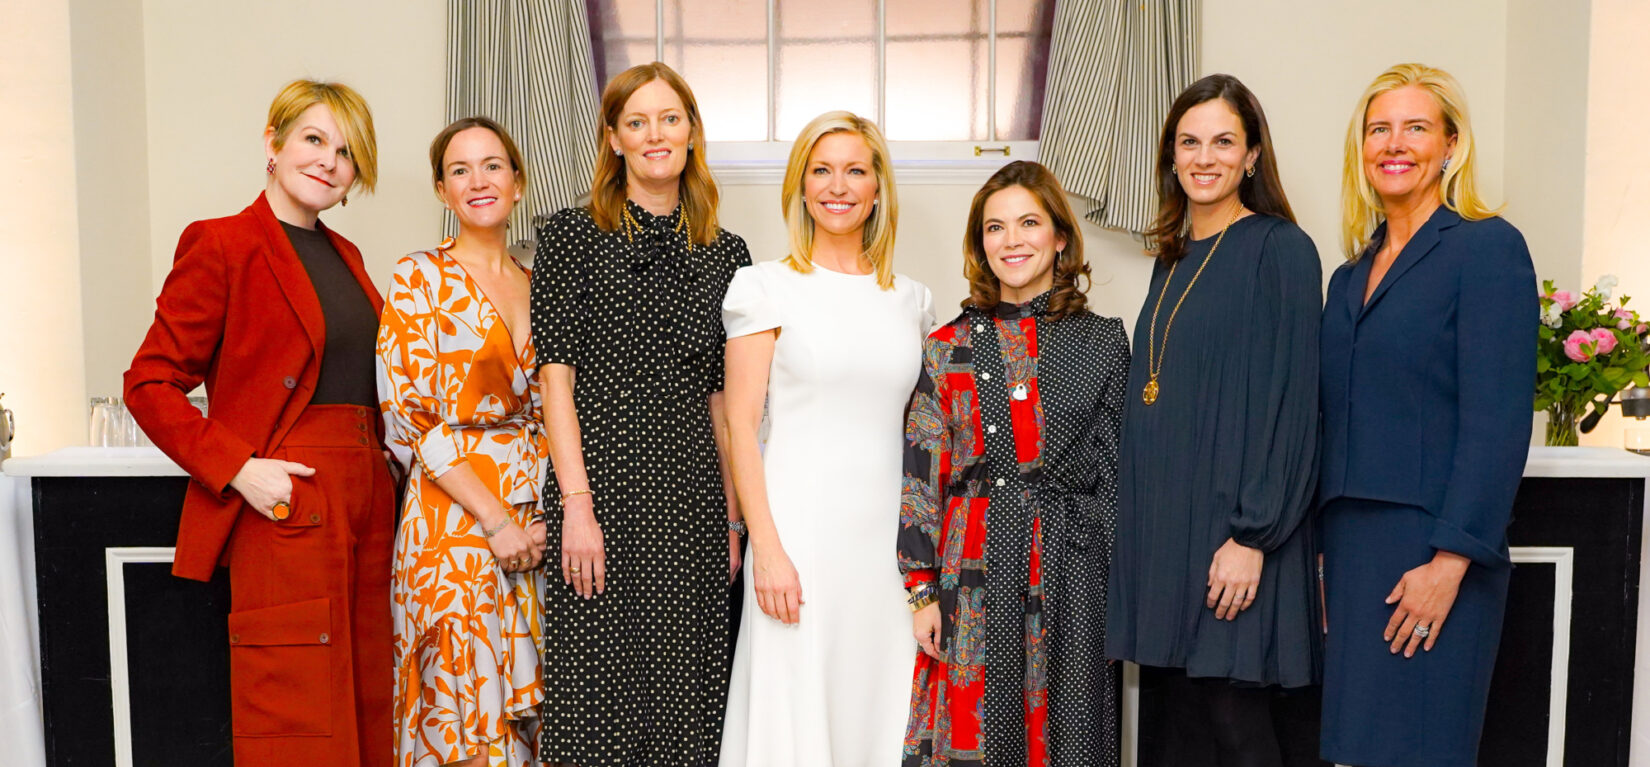 A group shot of the women leading the Playground Partners Galentine's Luncheon